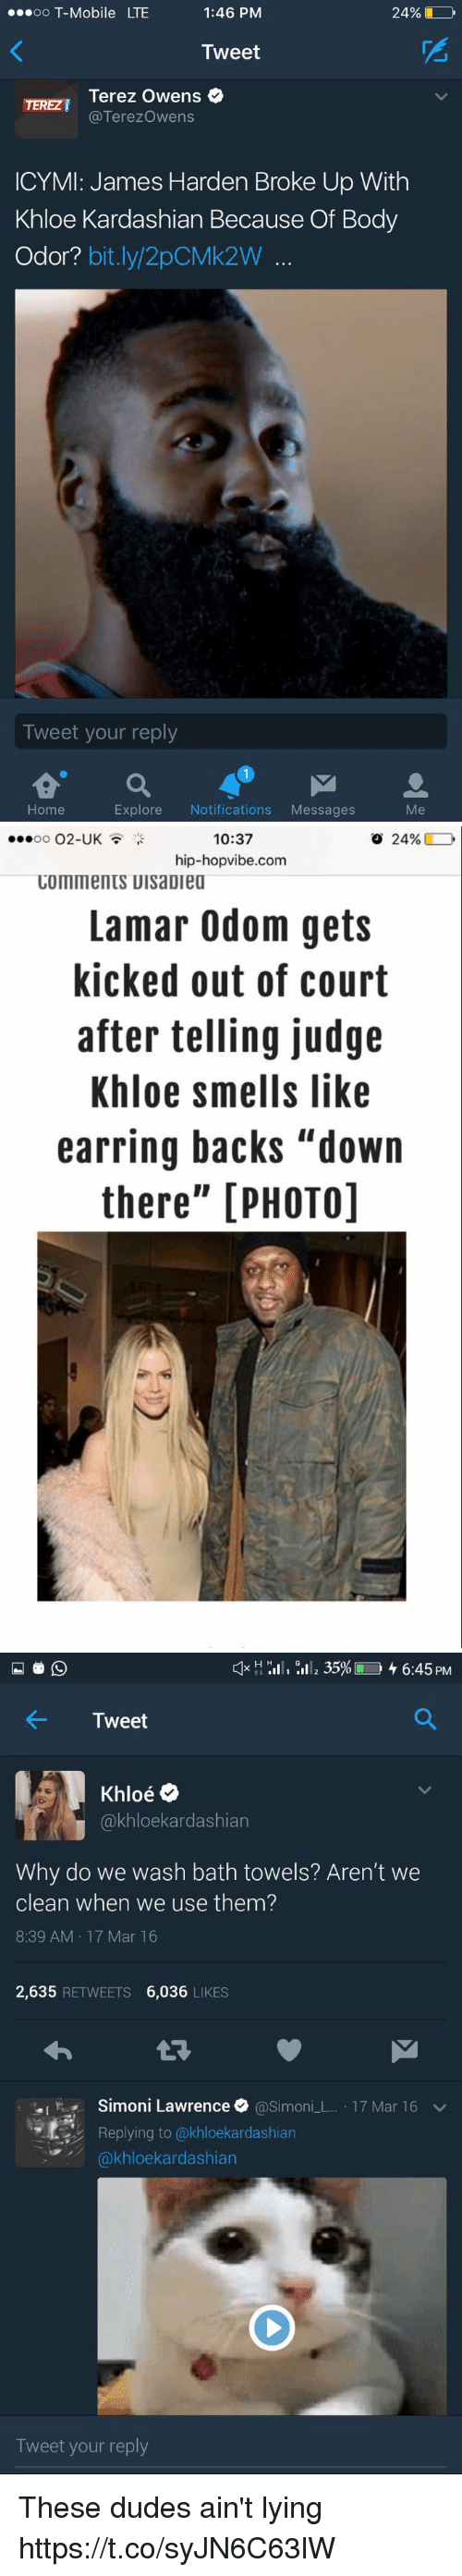 """earring: 24%  OO  T-Mobile LTE  1:46 PM  Tweet  Terez Owens  TEREZI  Terezowens  ICYMI: James Harden Broke Up With  Khloe Kardashian Because Of Body  Odor?  bit.ly 2pCMk2W  Tweet your reply  Explore  Notifications  Messages  Home   10:37  o 24%  O2-UK  OO  hip-hopvibe.com  COmments UIsaDiea  Lamar Odom gets  kicked out of court  after telling judge  Khloe smells like  earring backs """"down  there"""" [PHOTO]   H H  ill, 35%L 6:45 PM  Tweet  Oe  akhloekardashian  Why do we wash bath towels? Aren't we  clean when we use them?  8:39 AM 17 Mar 16  2,635  RETWEETS  6,036  LIKES  Simoni Lawrence  @Simon  L 17 Mar 16 v  Replying to @khloekardashian  kardashian  Tweet your reply These dudes ain't lying https://t.co/syJN6C63lW"""